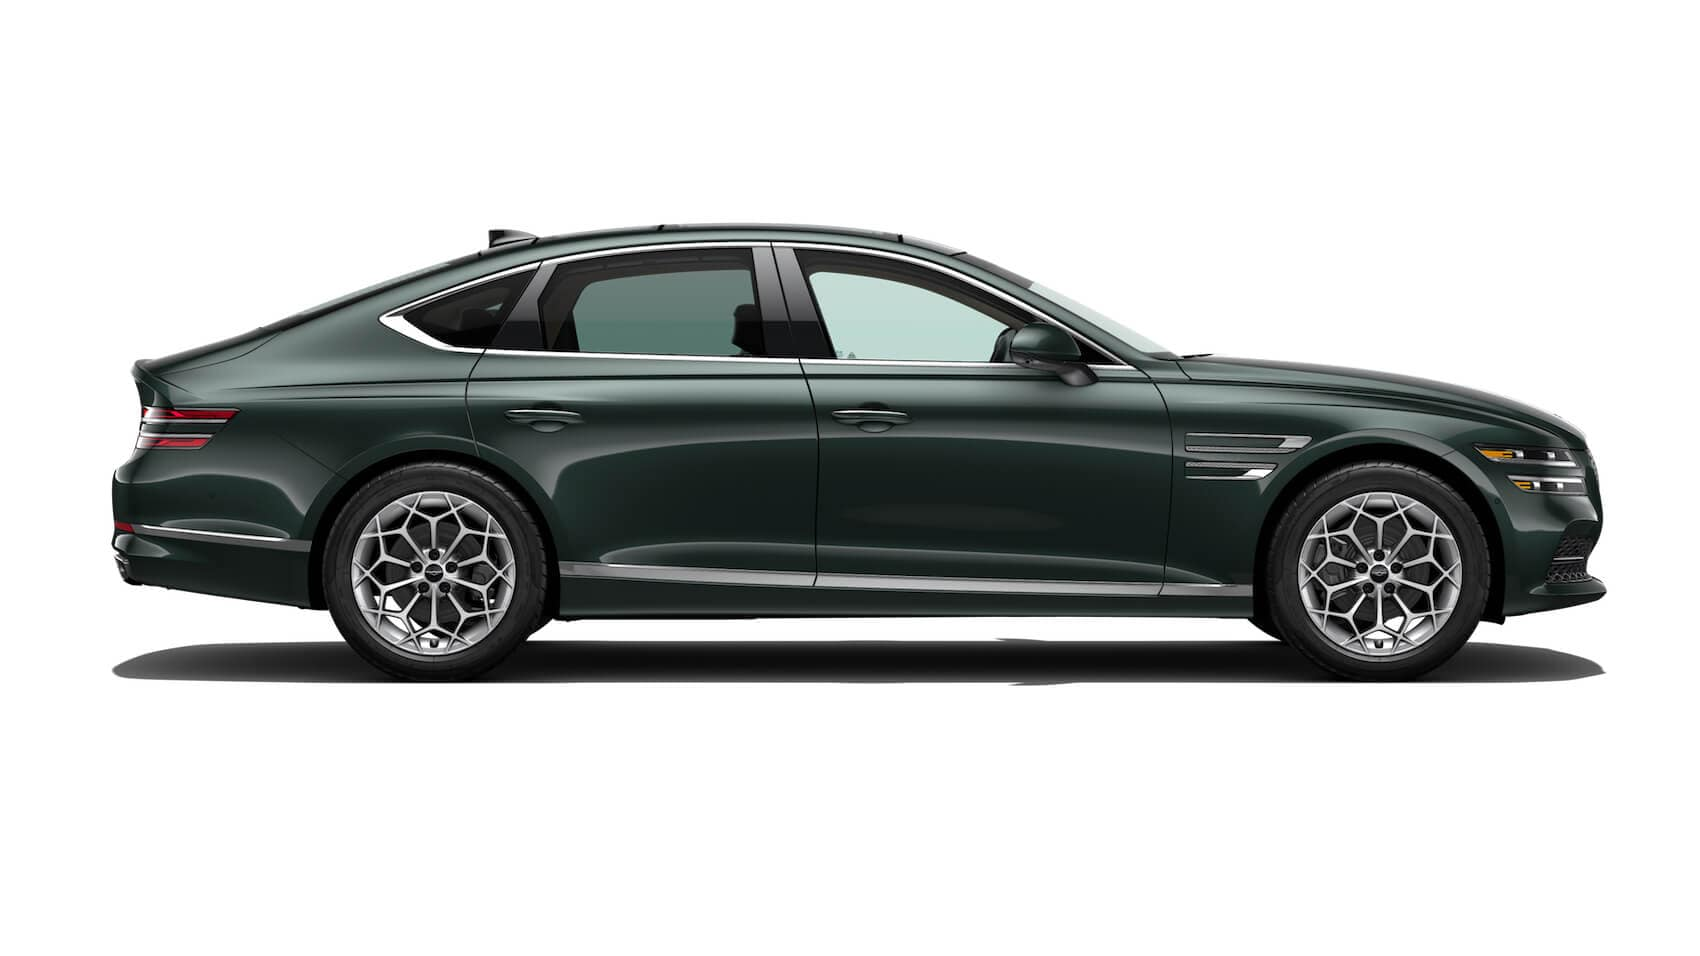 2021 Gensis G80 features Columbus, OH